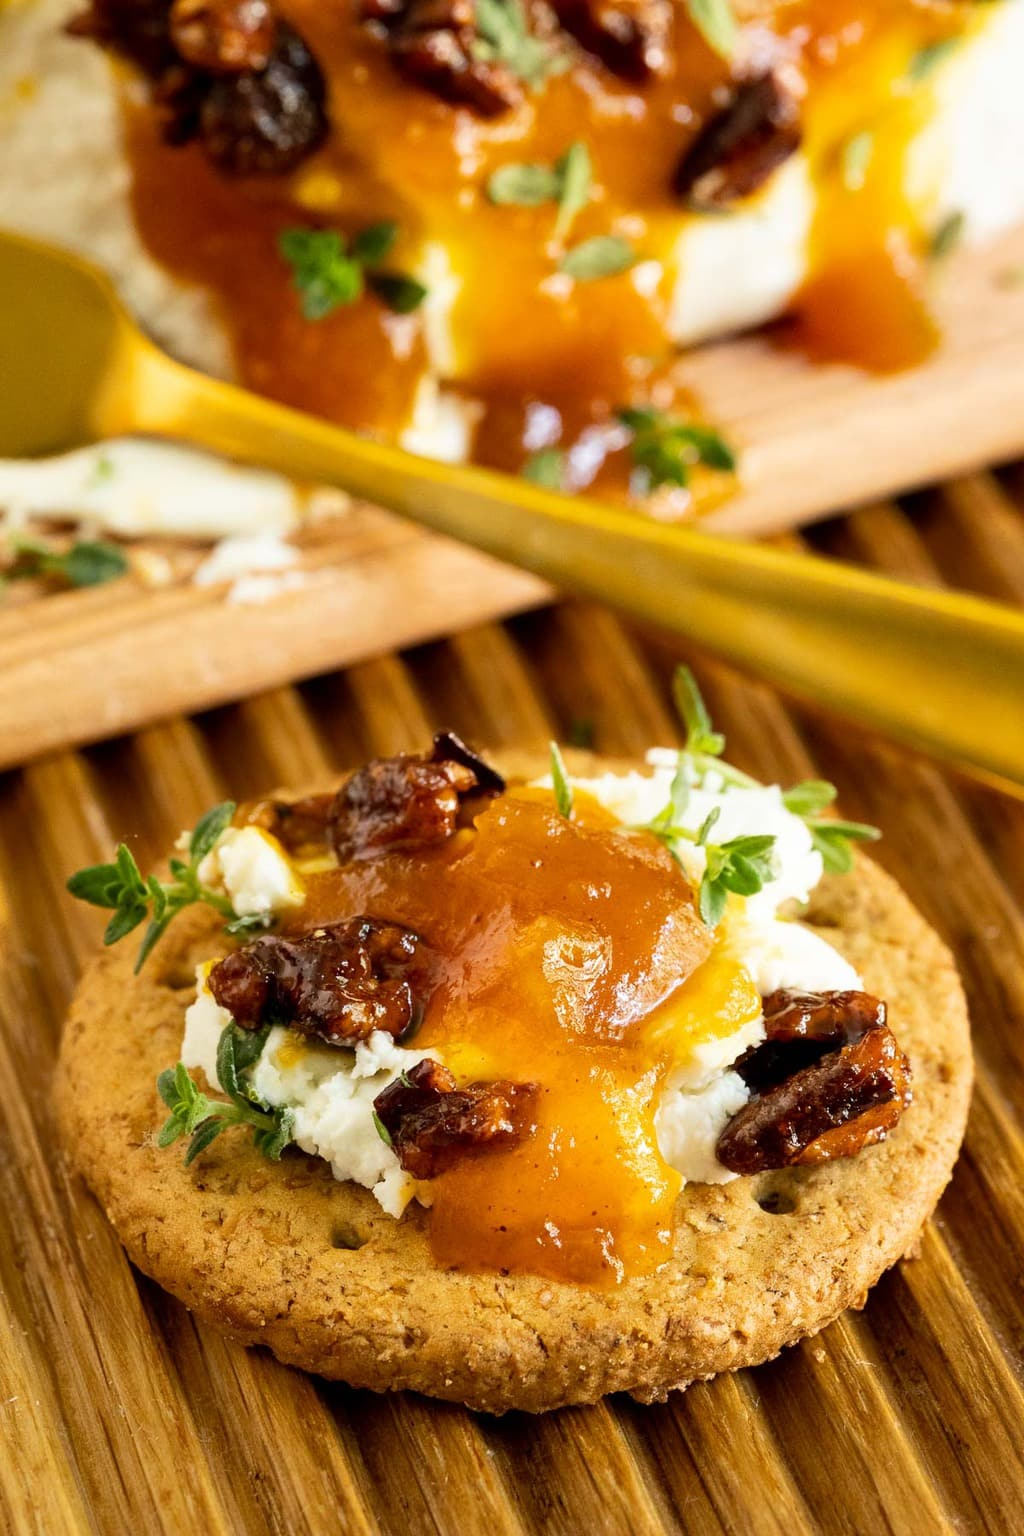 Extreme closeup vertical photo of a cracker with Pumpkin Jam (Confiture De Citrouille), candied pecans and fresh thyme leaves on top.